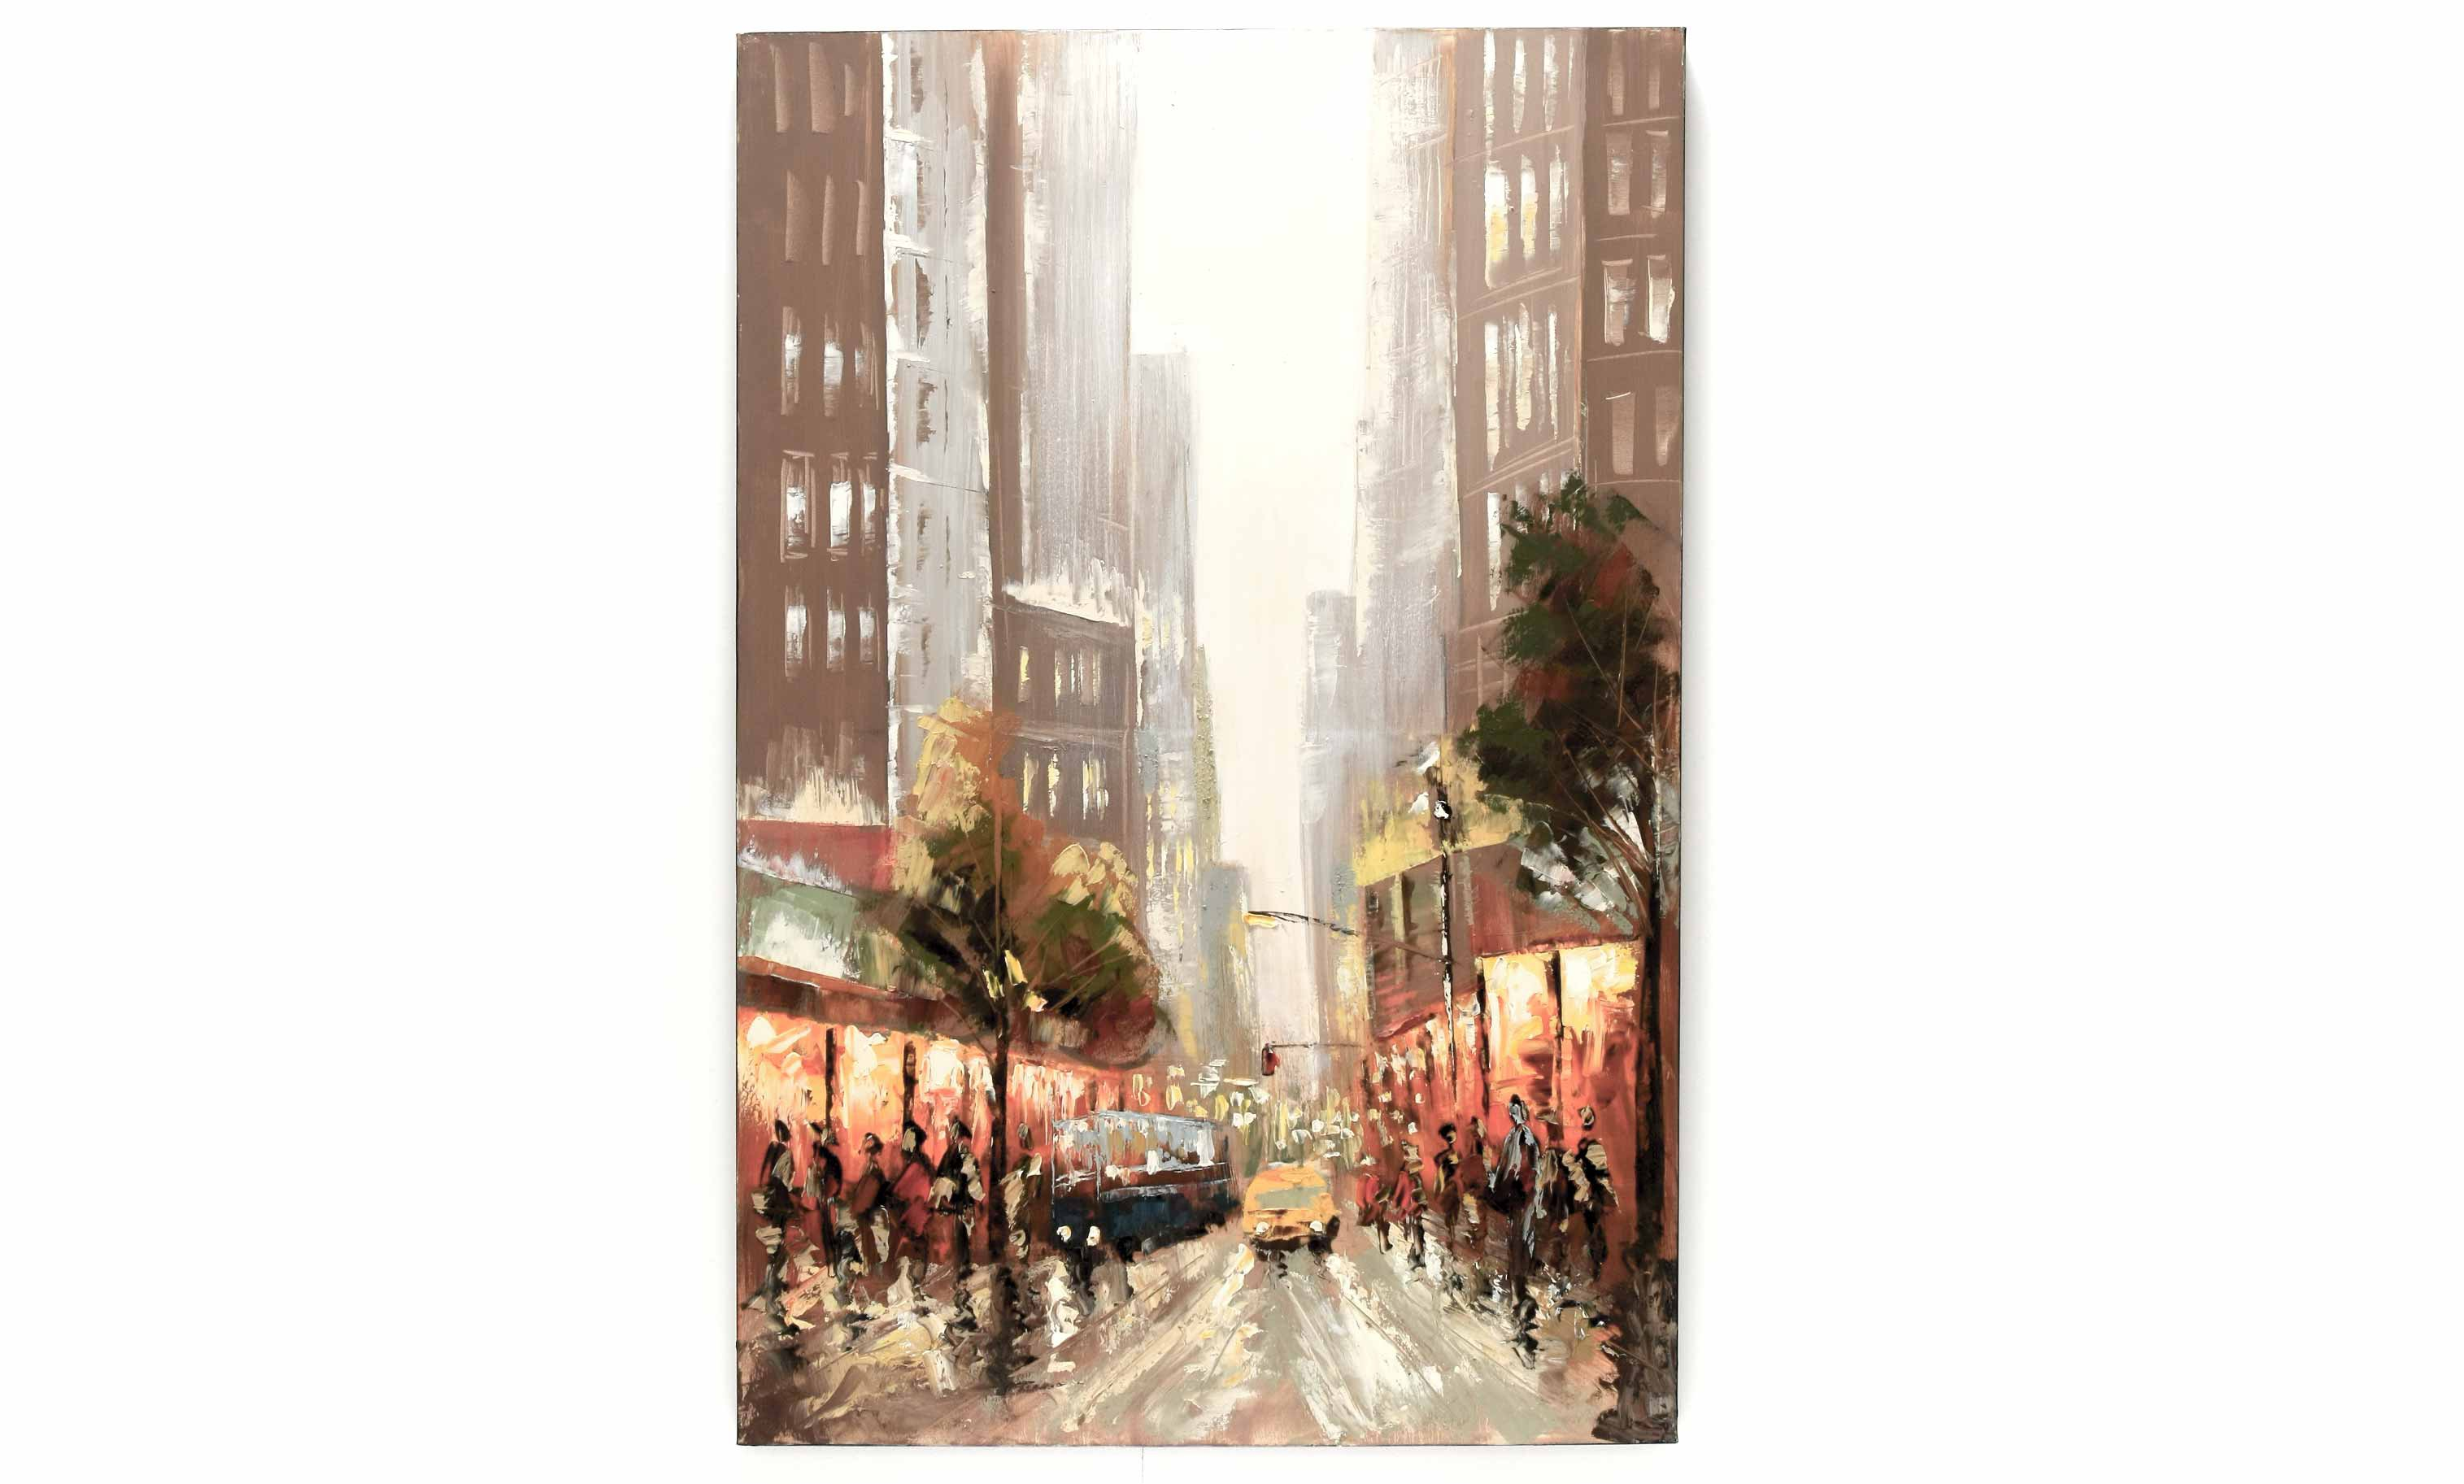 Tableau new york 5eme avenue new art gallery for Tableau paris londres new york